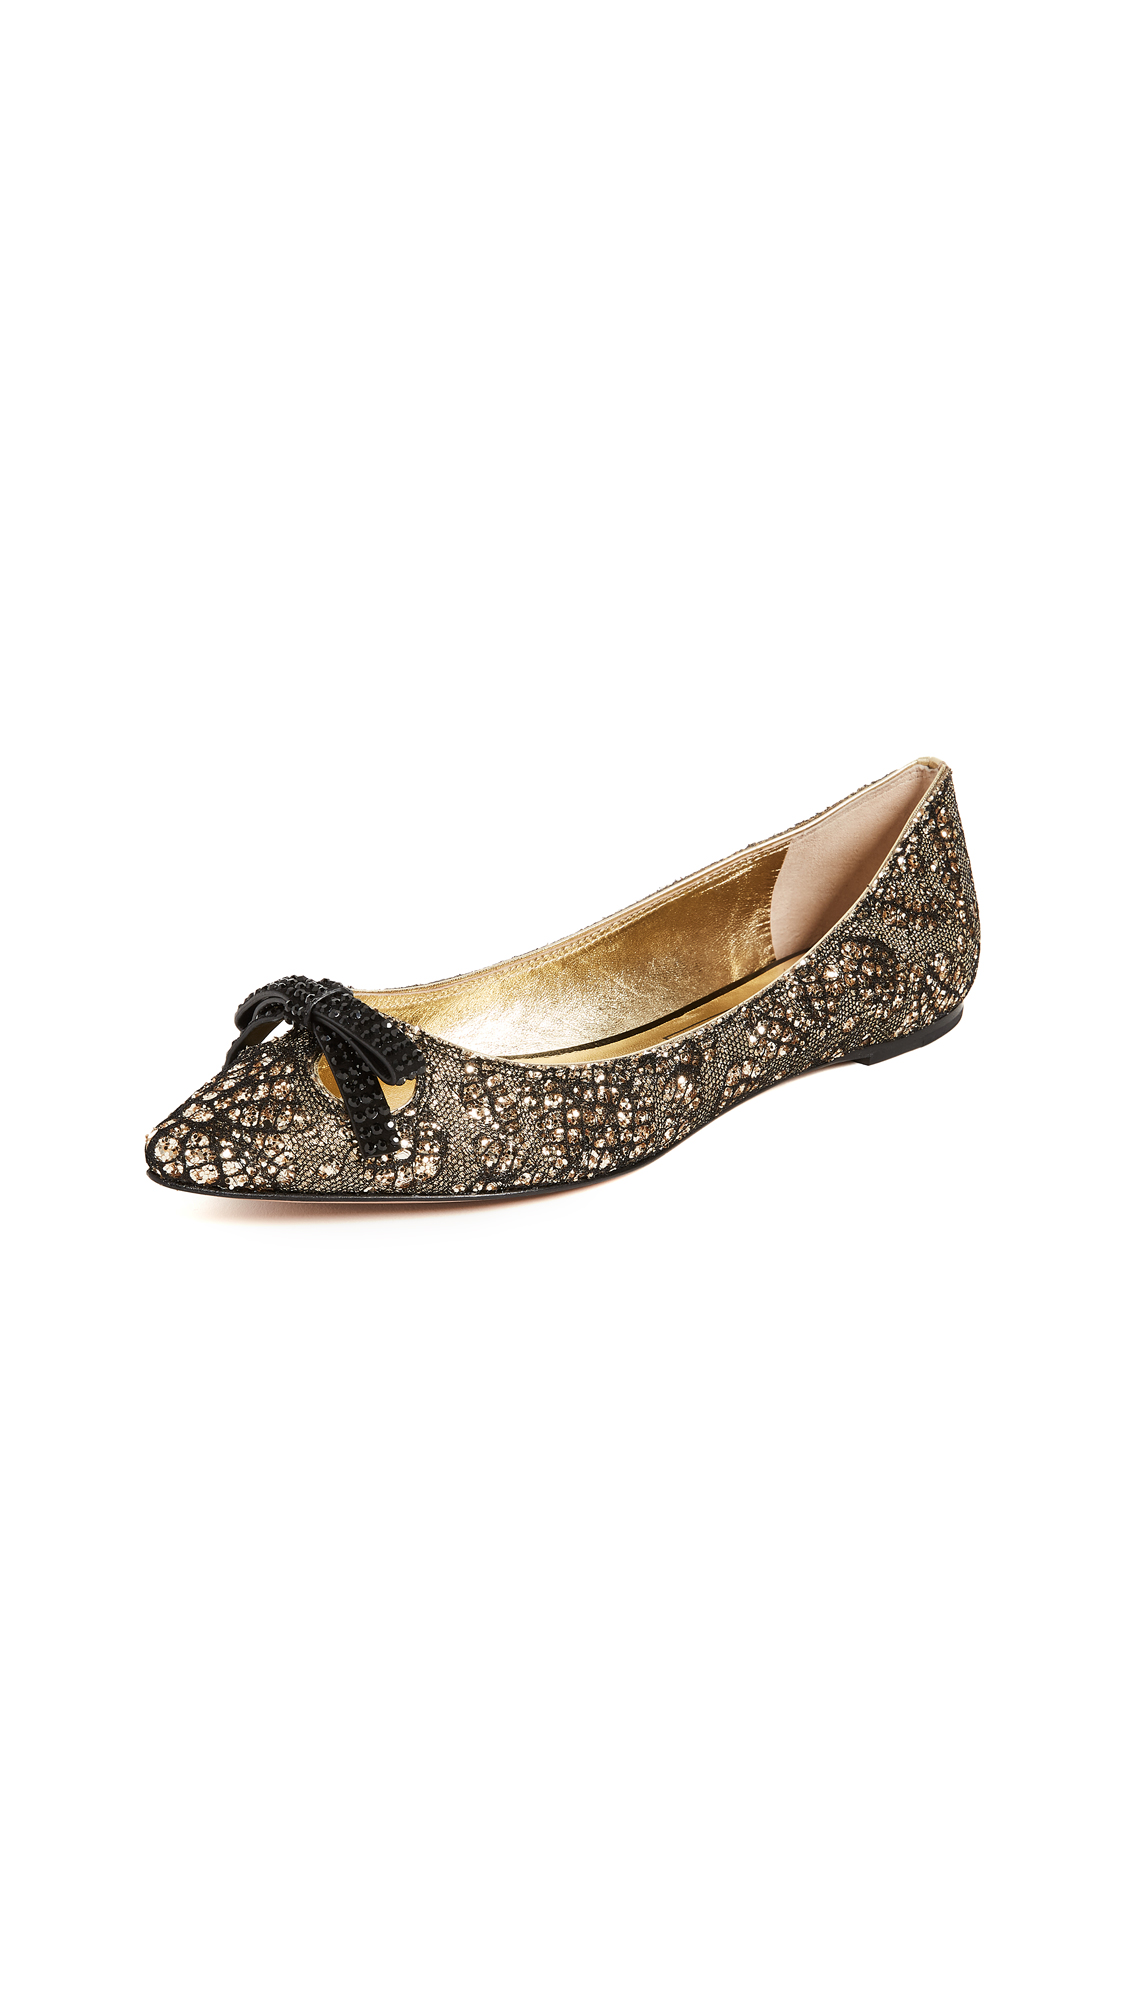 Marc Jacobs Jaime Pointy Toe Flats - Gold